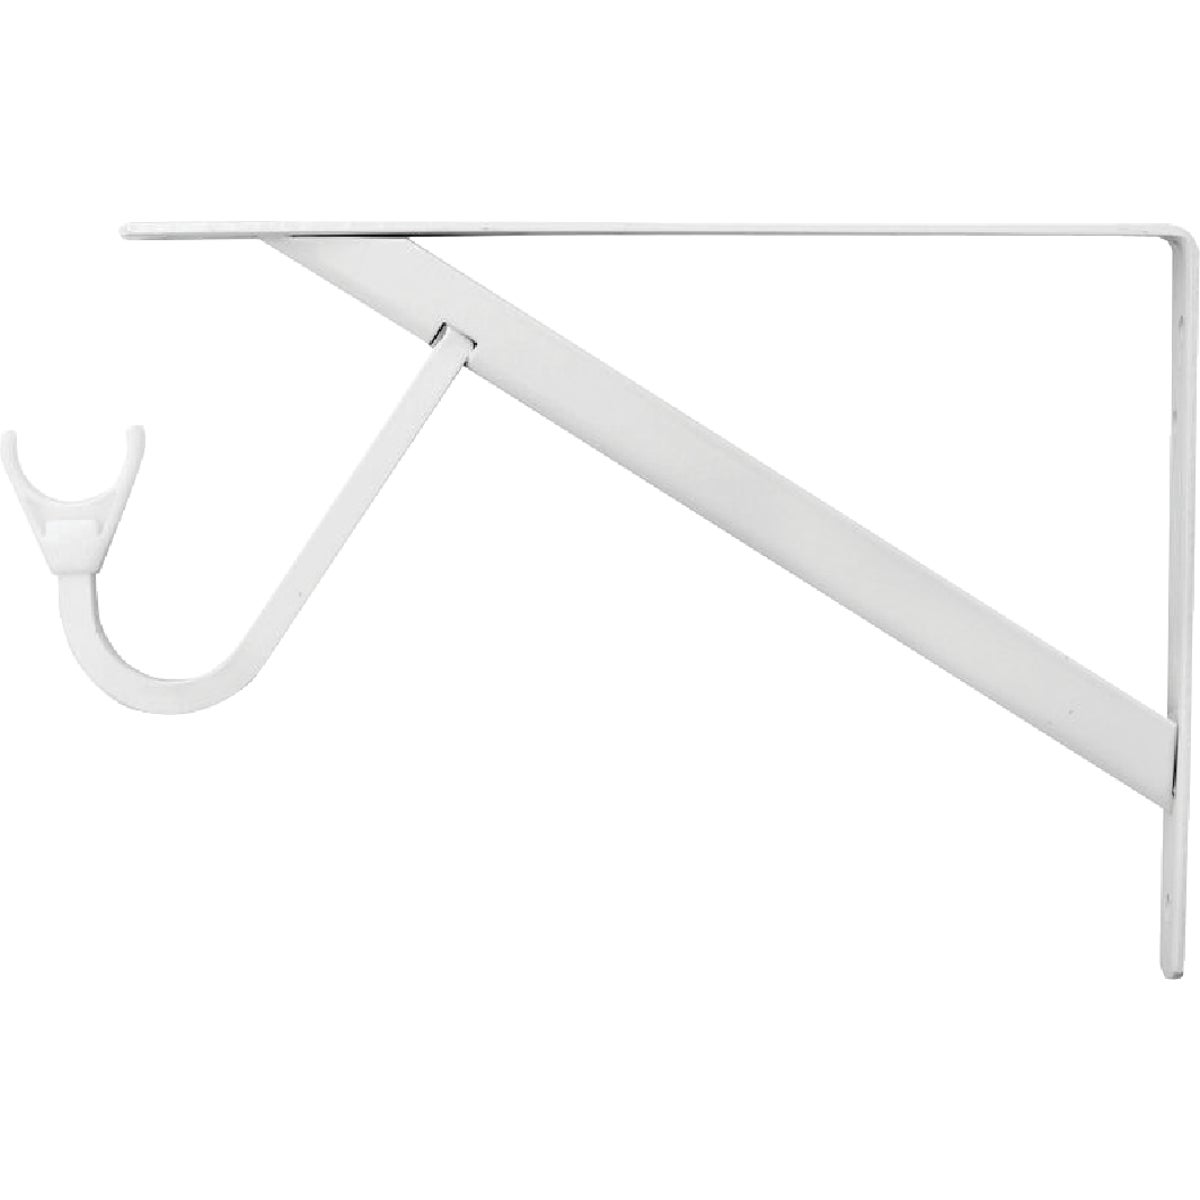 WHT HD SHELF/ROD BRACKET